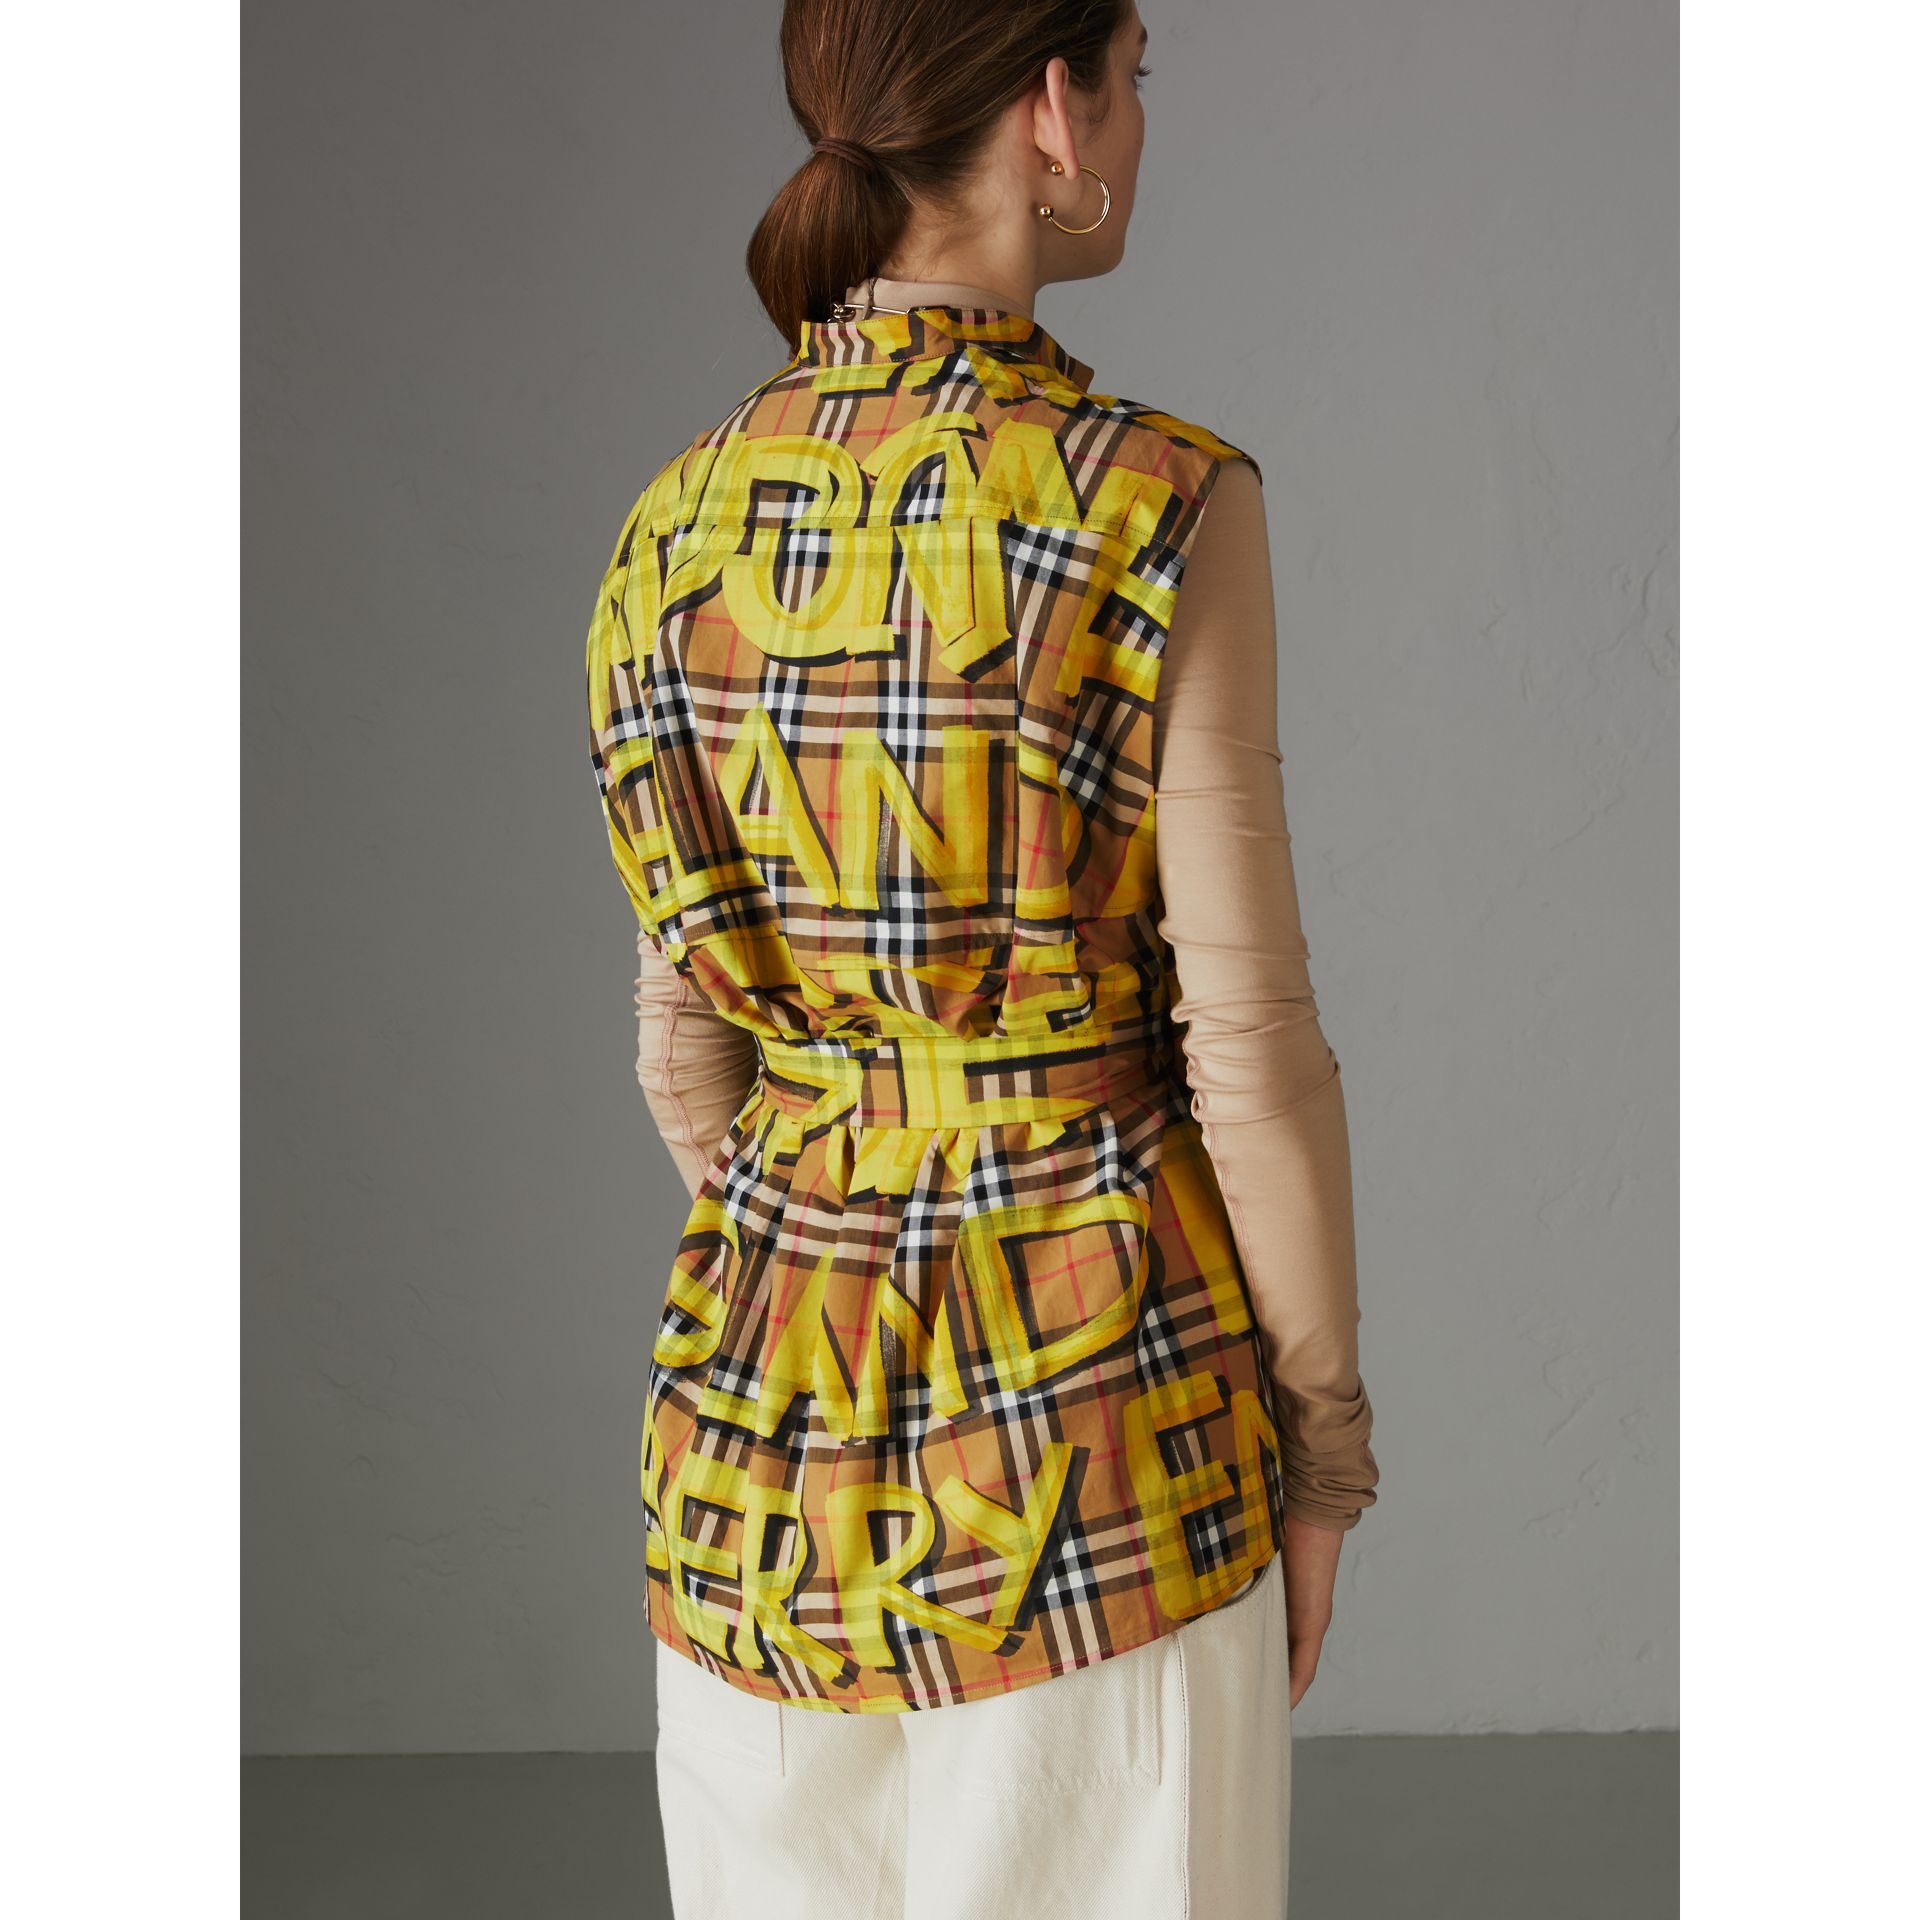 Sleeveless Graffiti Print Vintage Check Cotton Shirt in Bright Yellow - Women | Burberry Singapore - gallery image 2